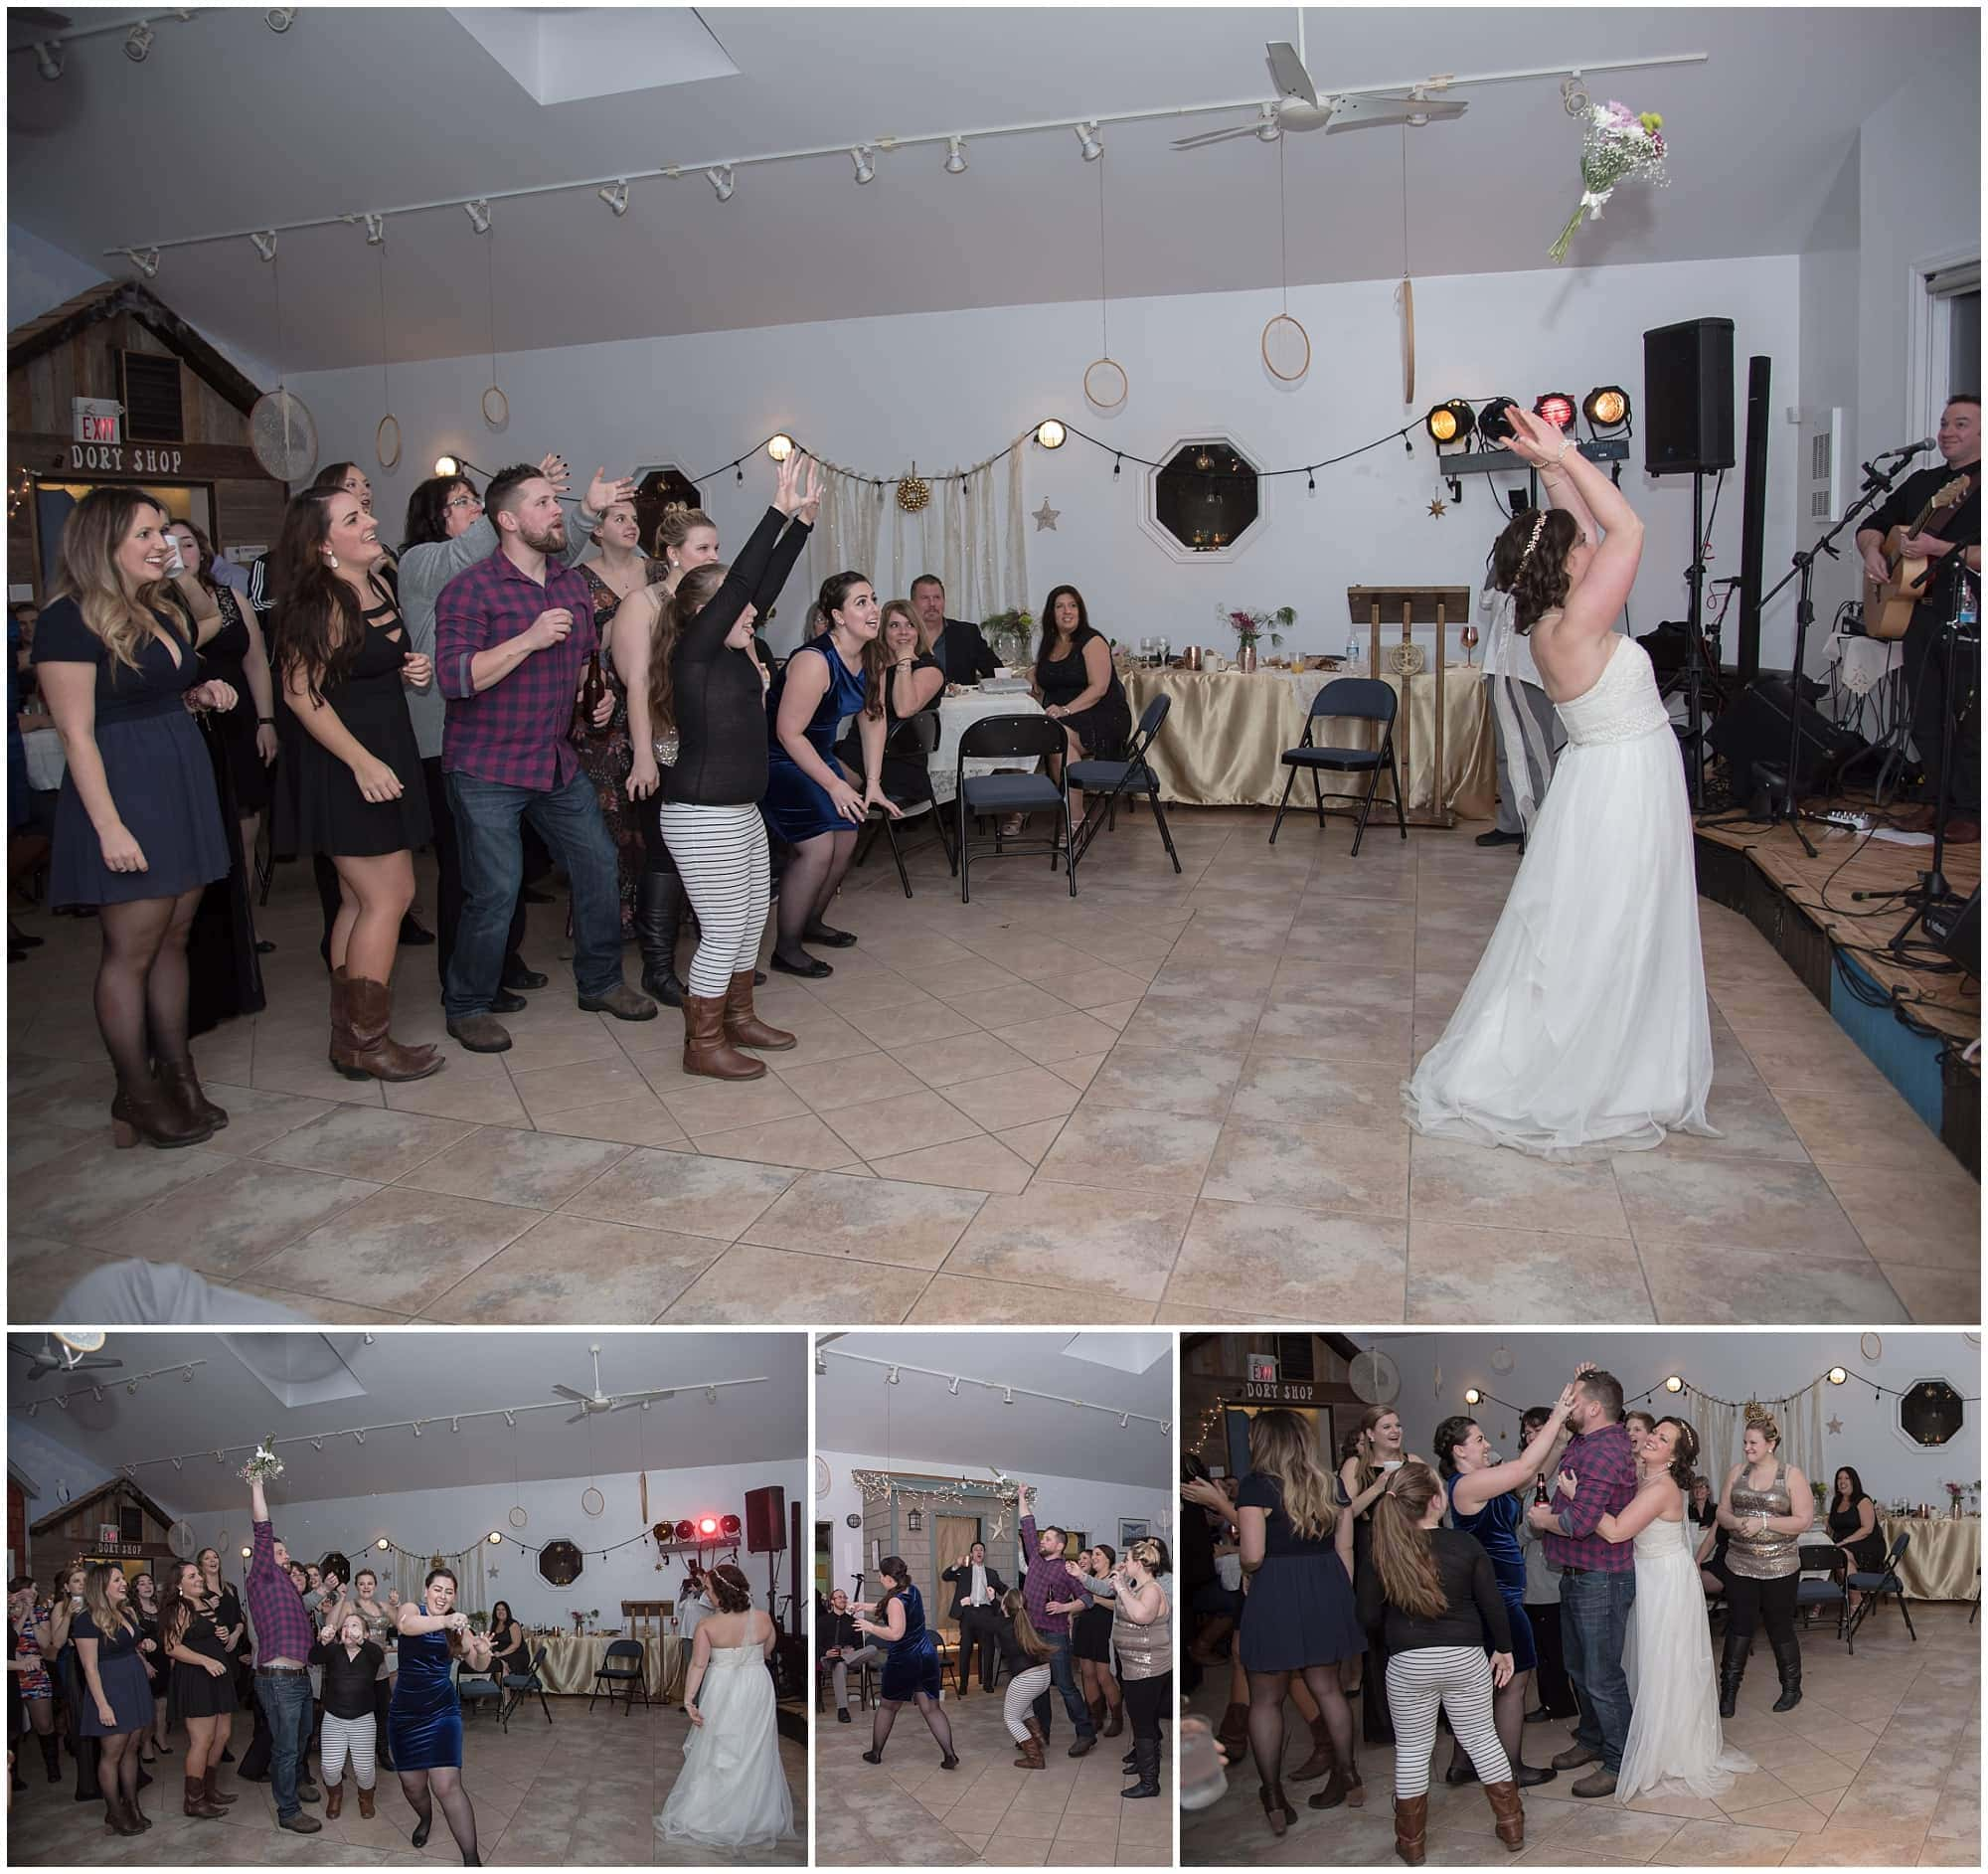 The bride tosses the bridal bouquet into the guests and a man catches the bouquet during a wedding reception at Fishermans Cove in Dartmouth NS.